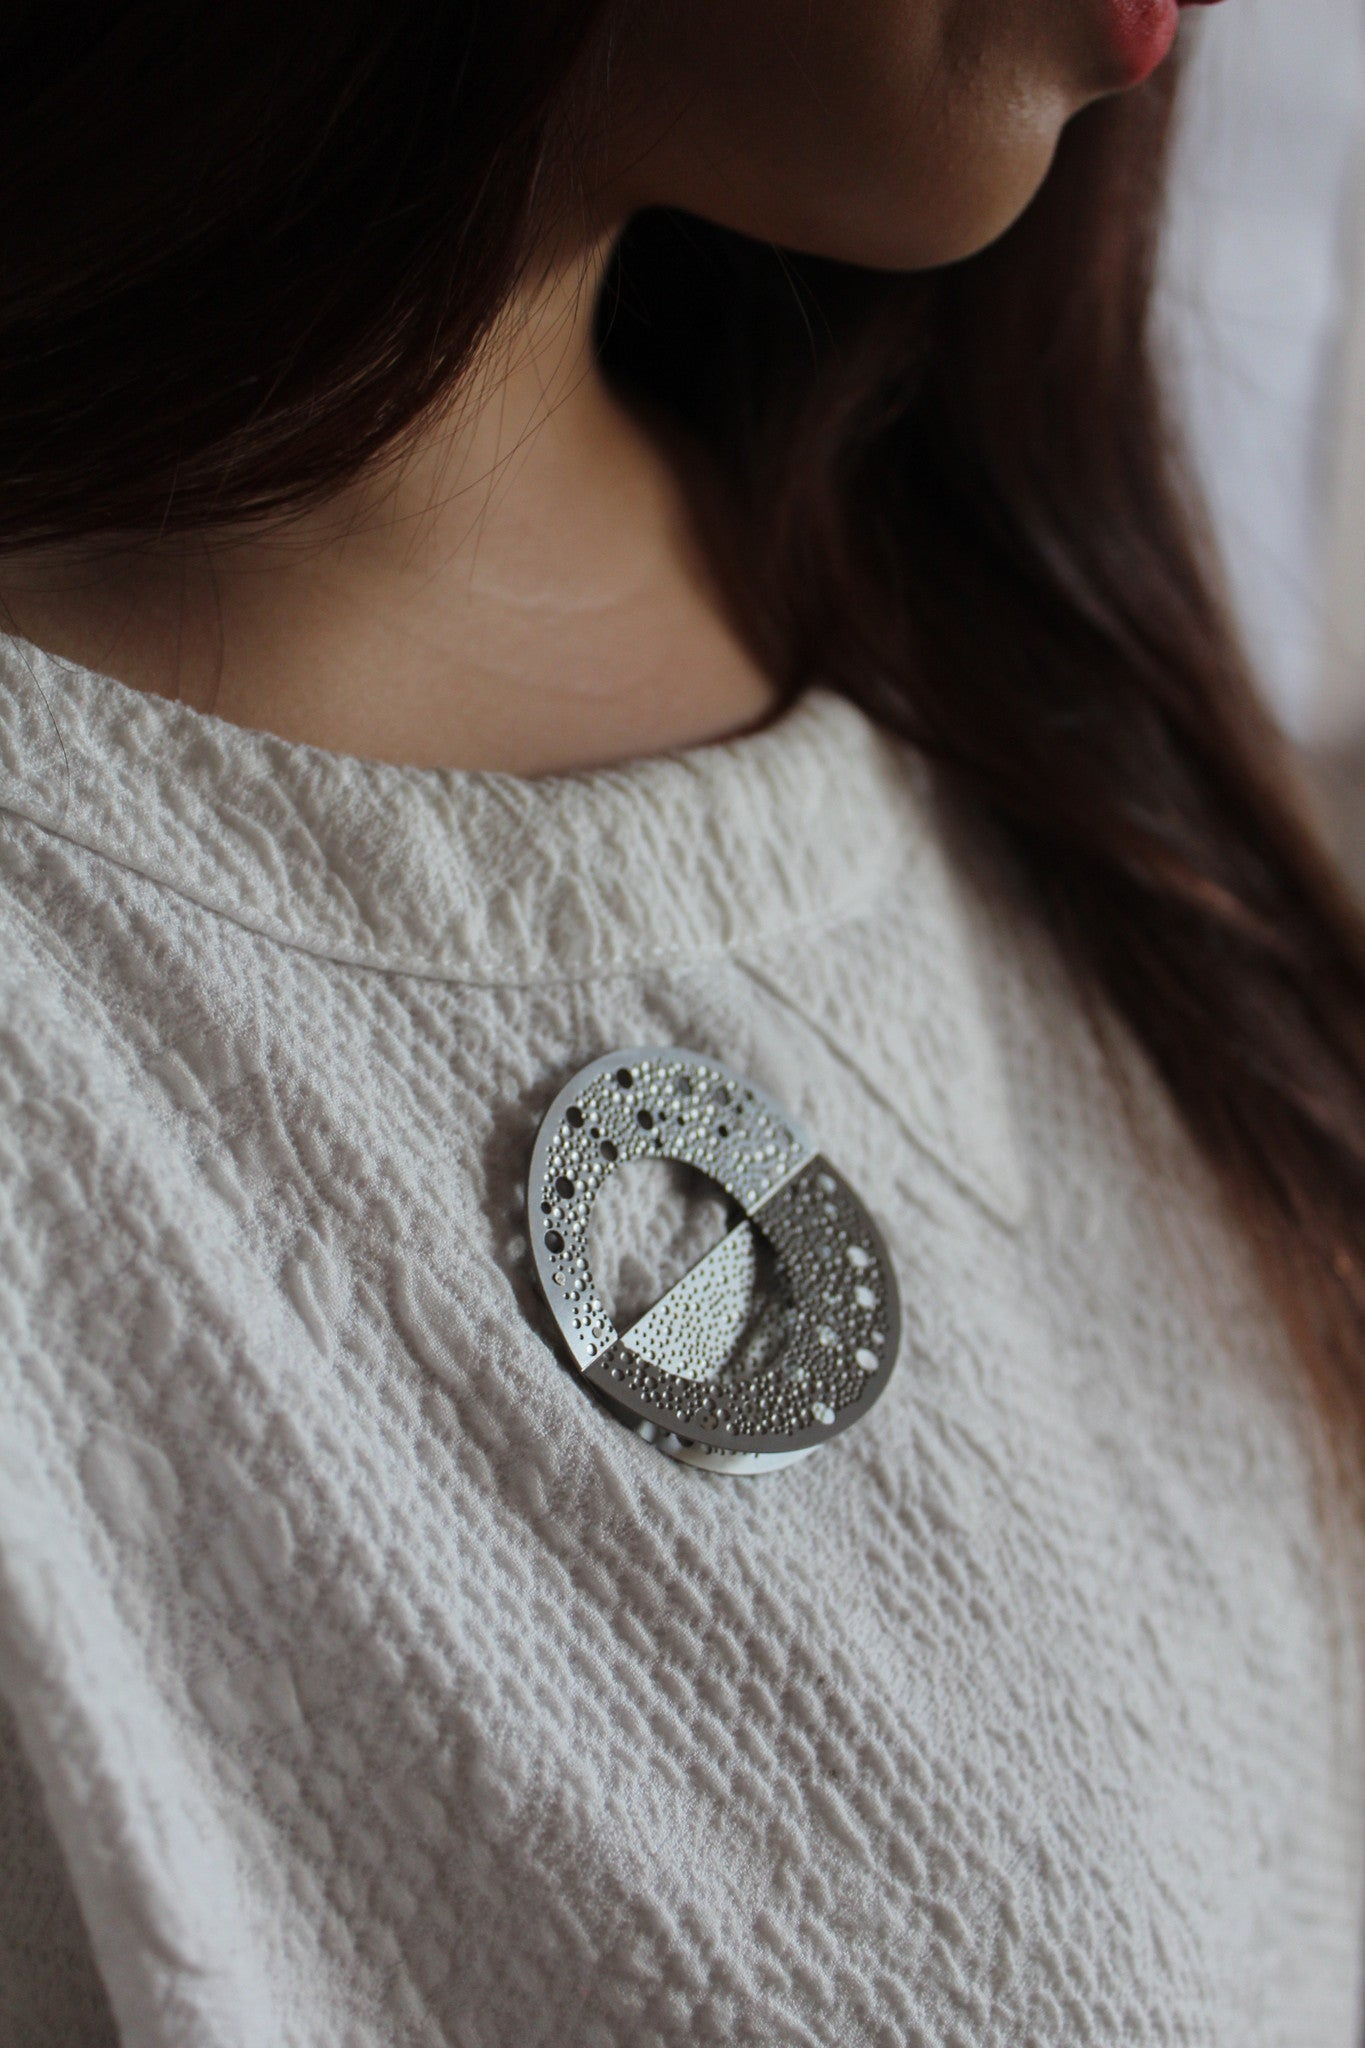 MILKY WAY BROOCH